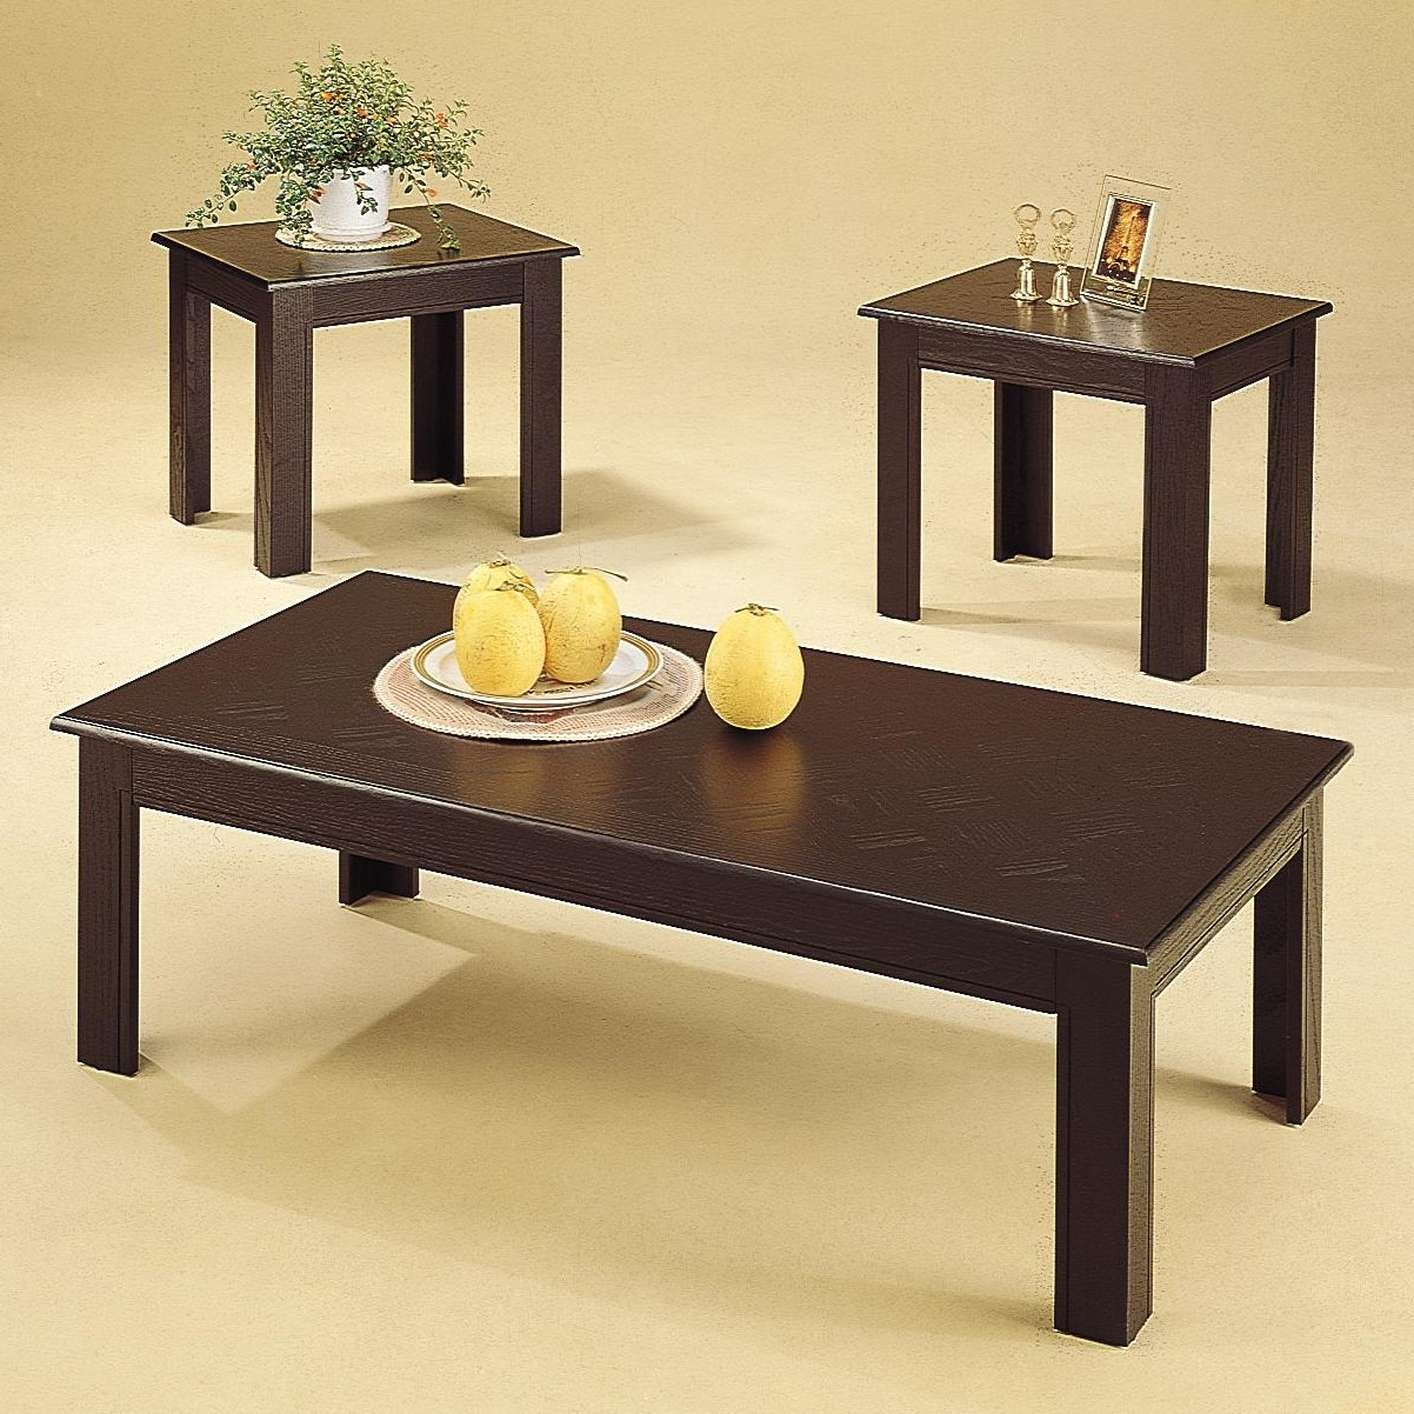 Most Current Black Wood Coffee Tables Inside Acosta Black Wood Coffee Table Set – Steal A Sofa Furniture Outlet (View 12 of 20)